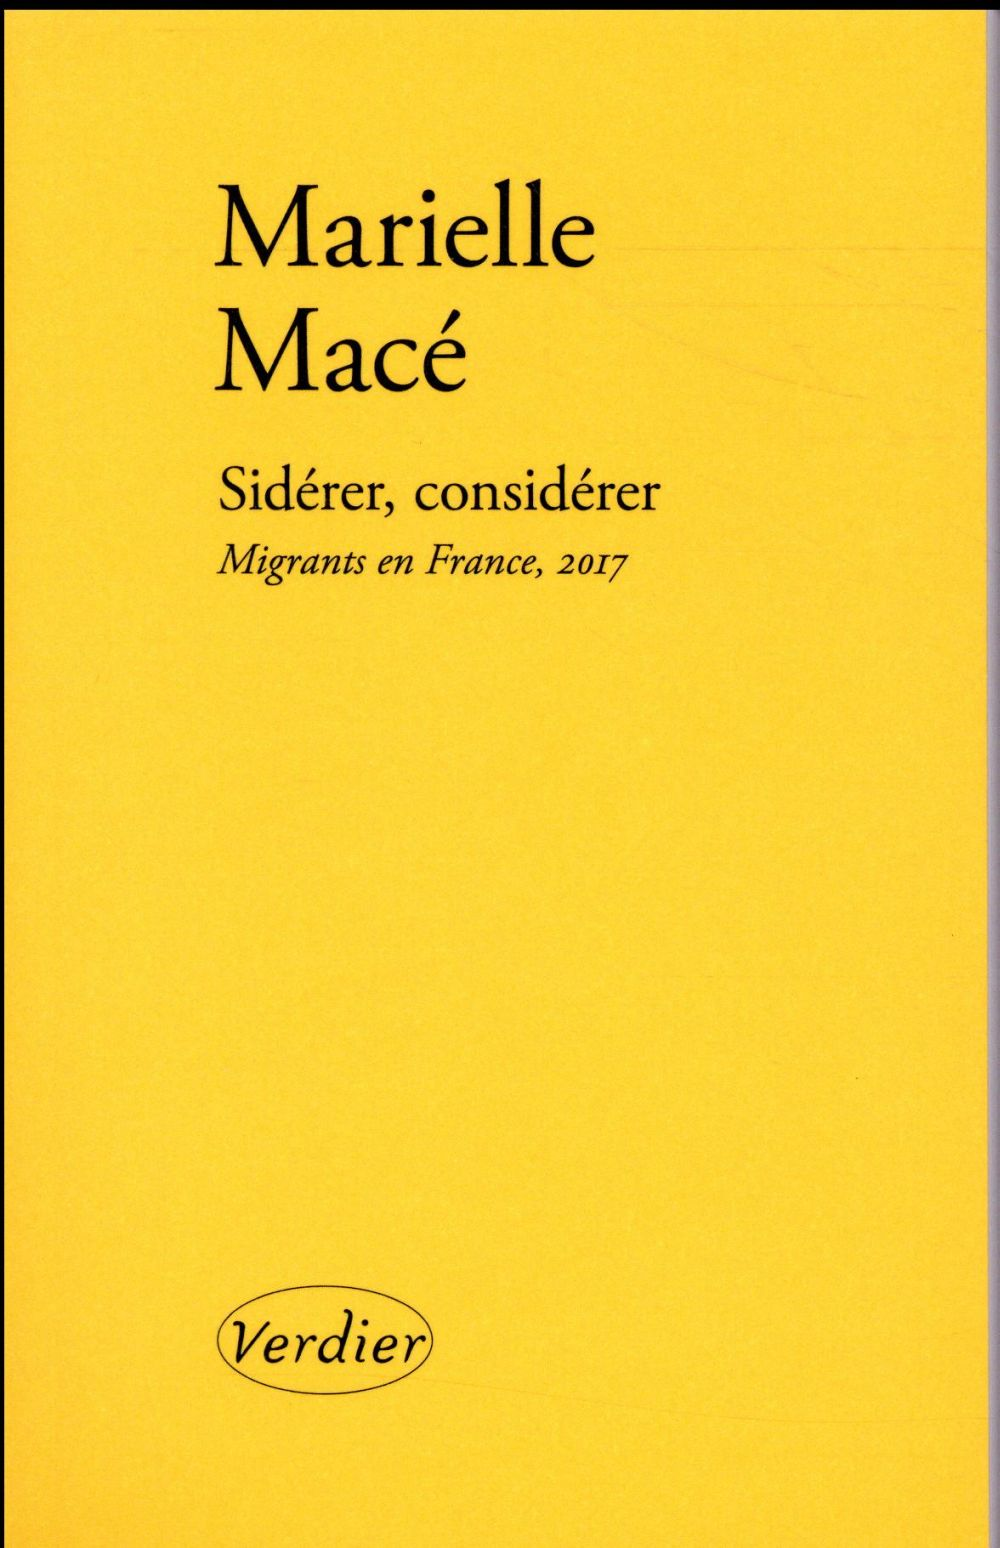 SIDERER, CONSIDERER : MIGRANTS EN FRANCE, 2017